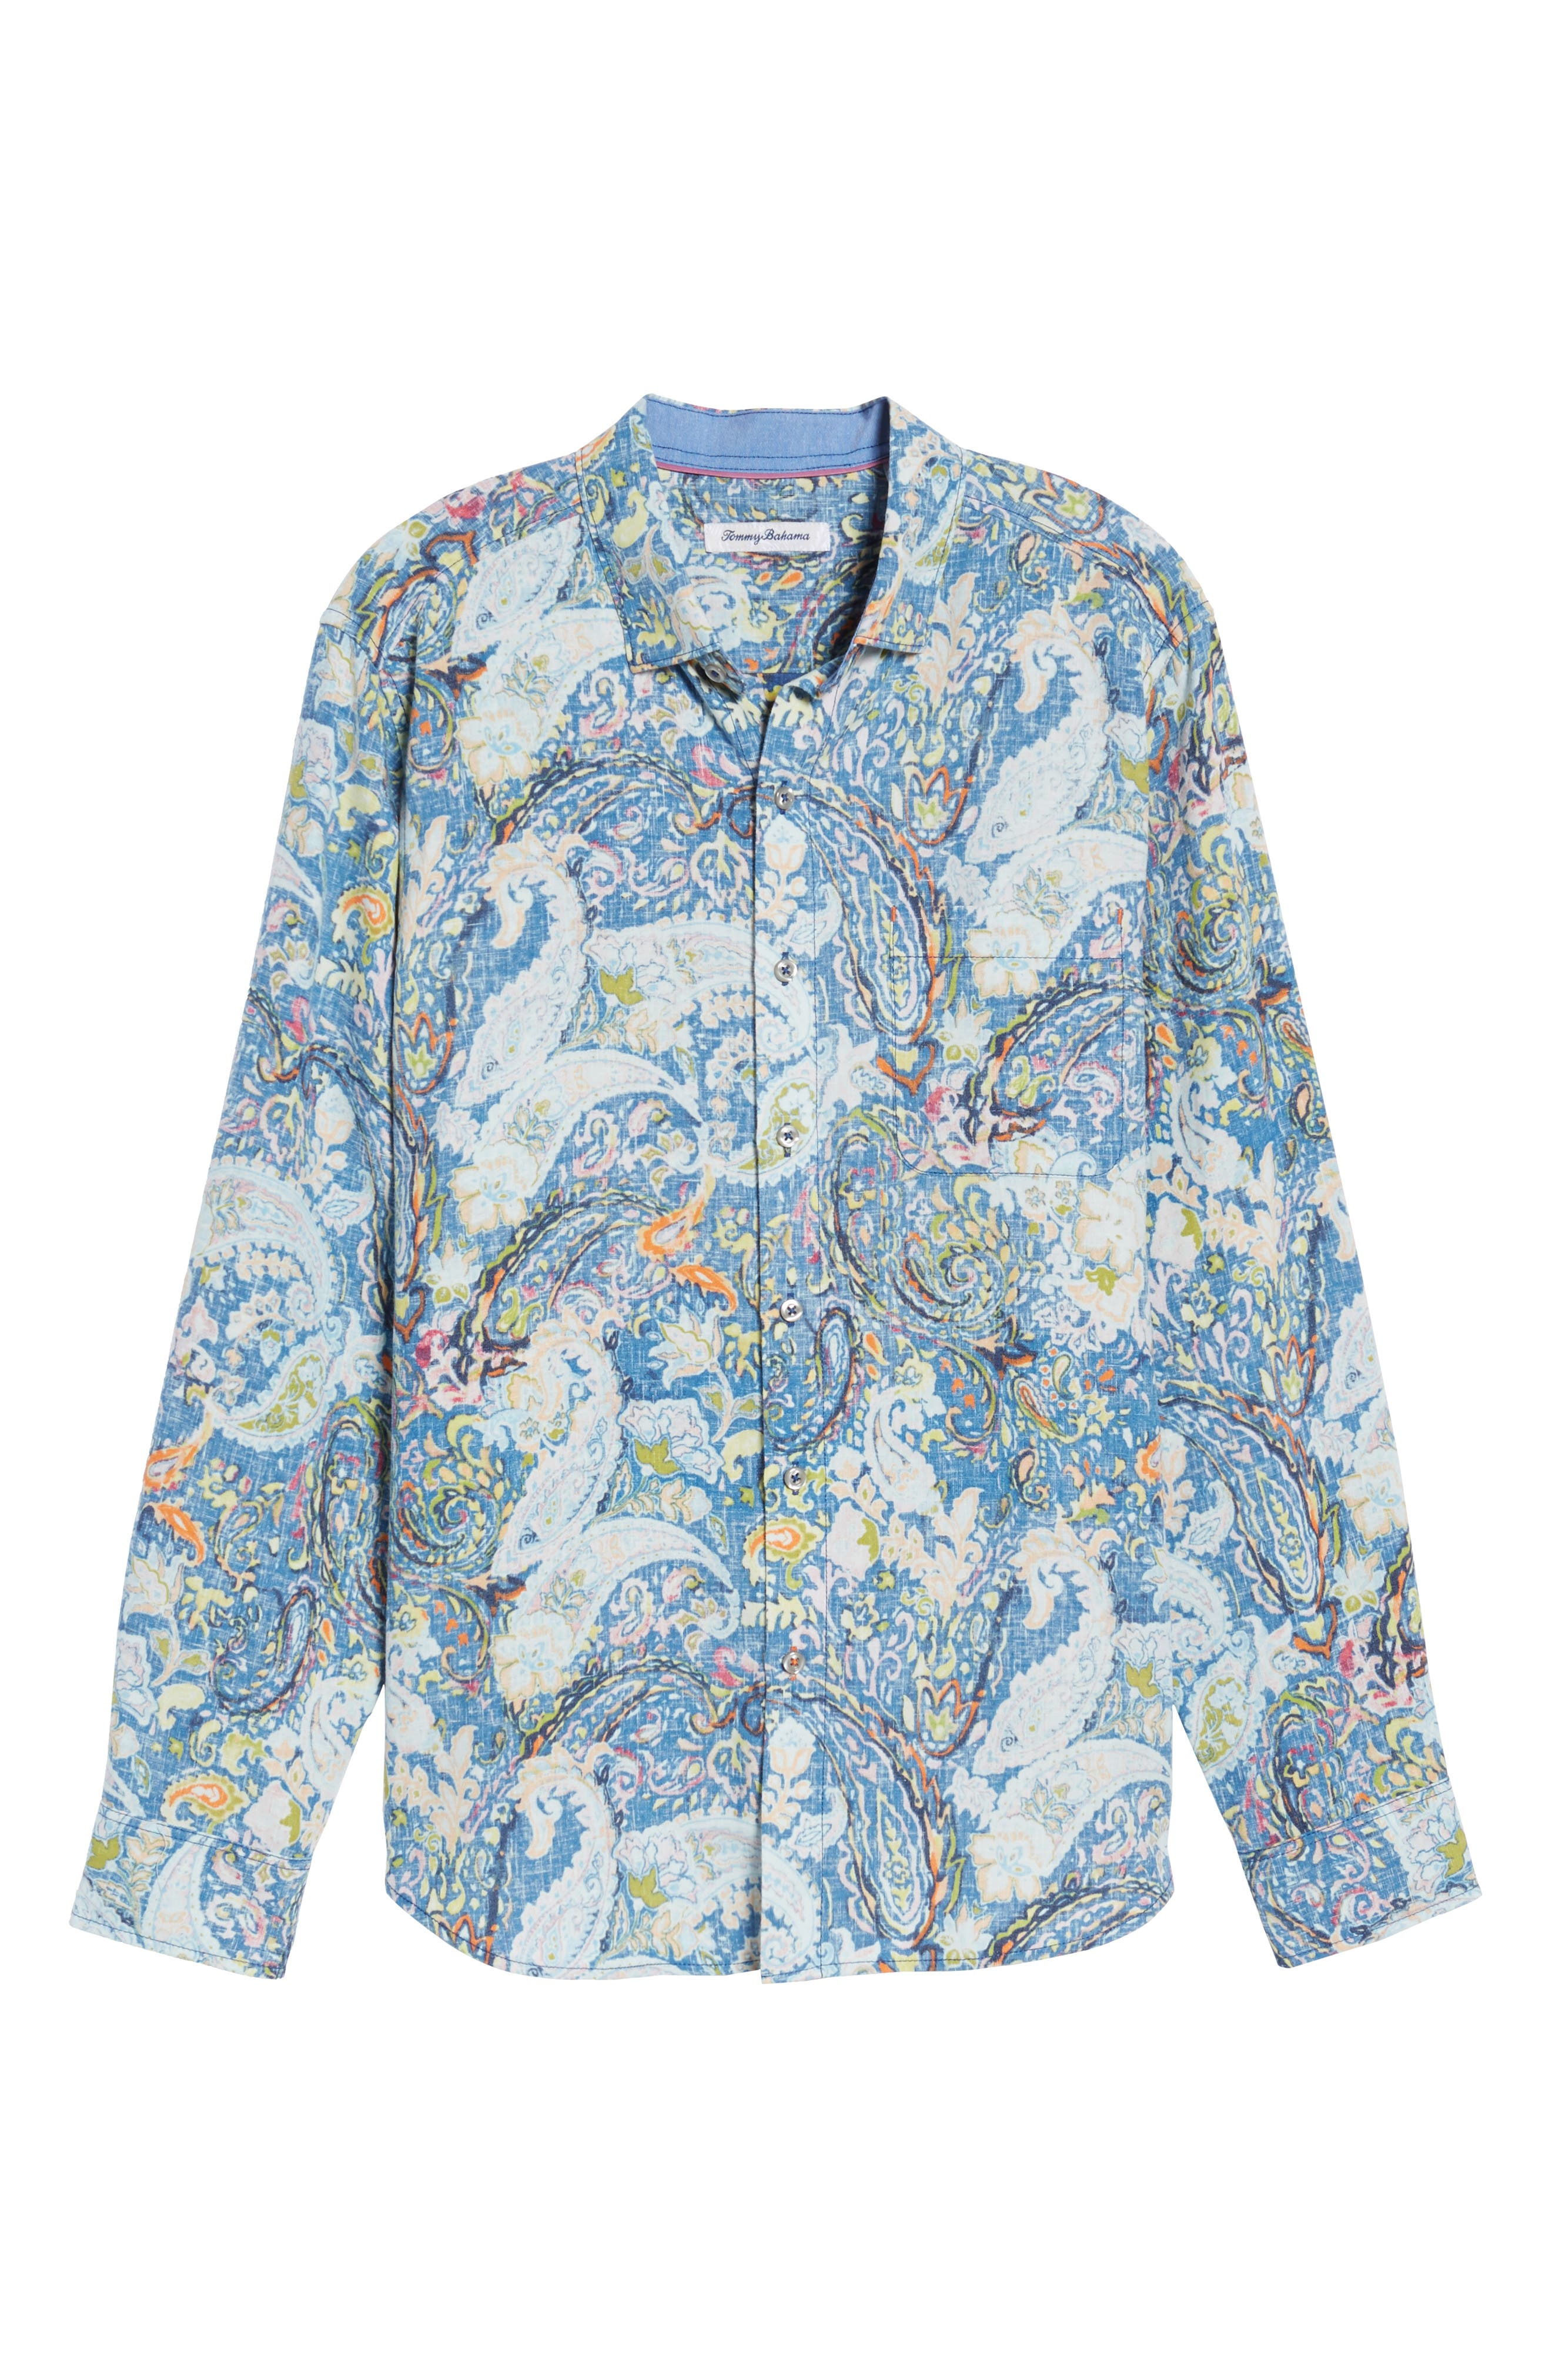 Paisley Promenade Sport Shirt,                             Alternate thumbnail 6, color,                             400